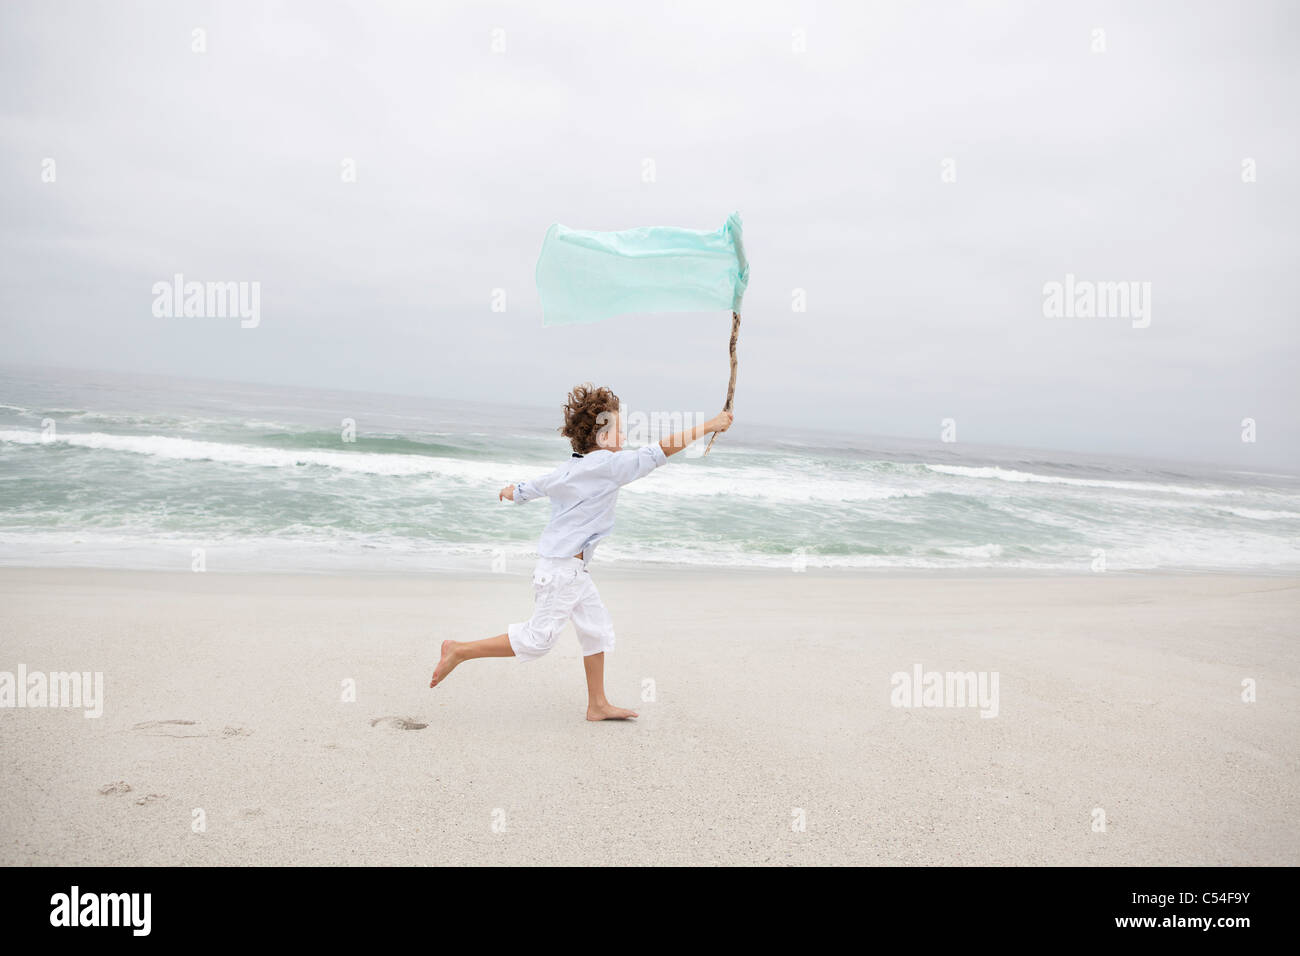 Beautiful view of beach with boy running - Stock Image